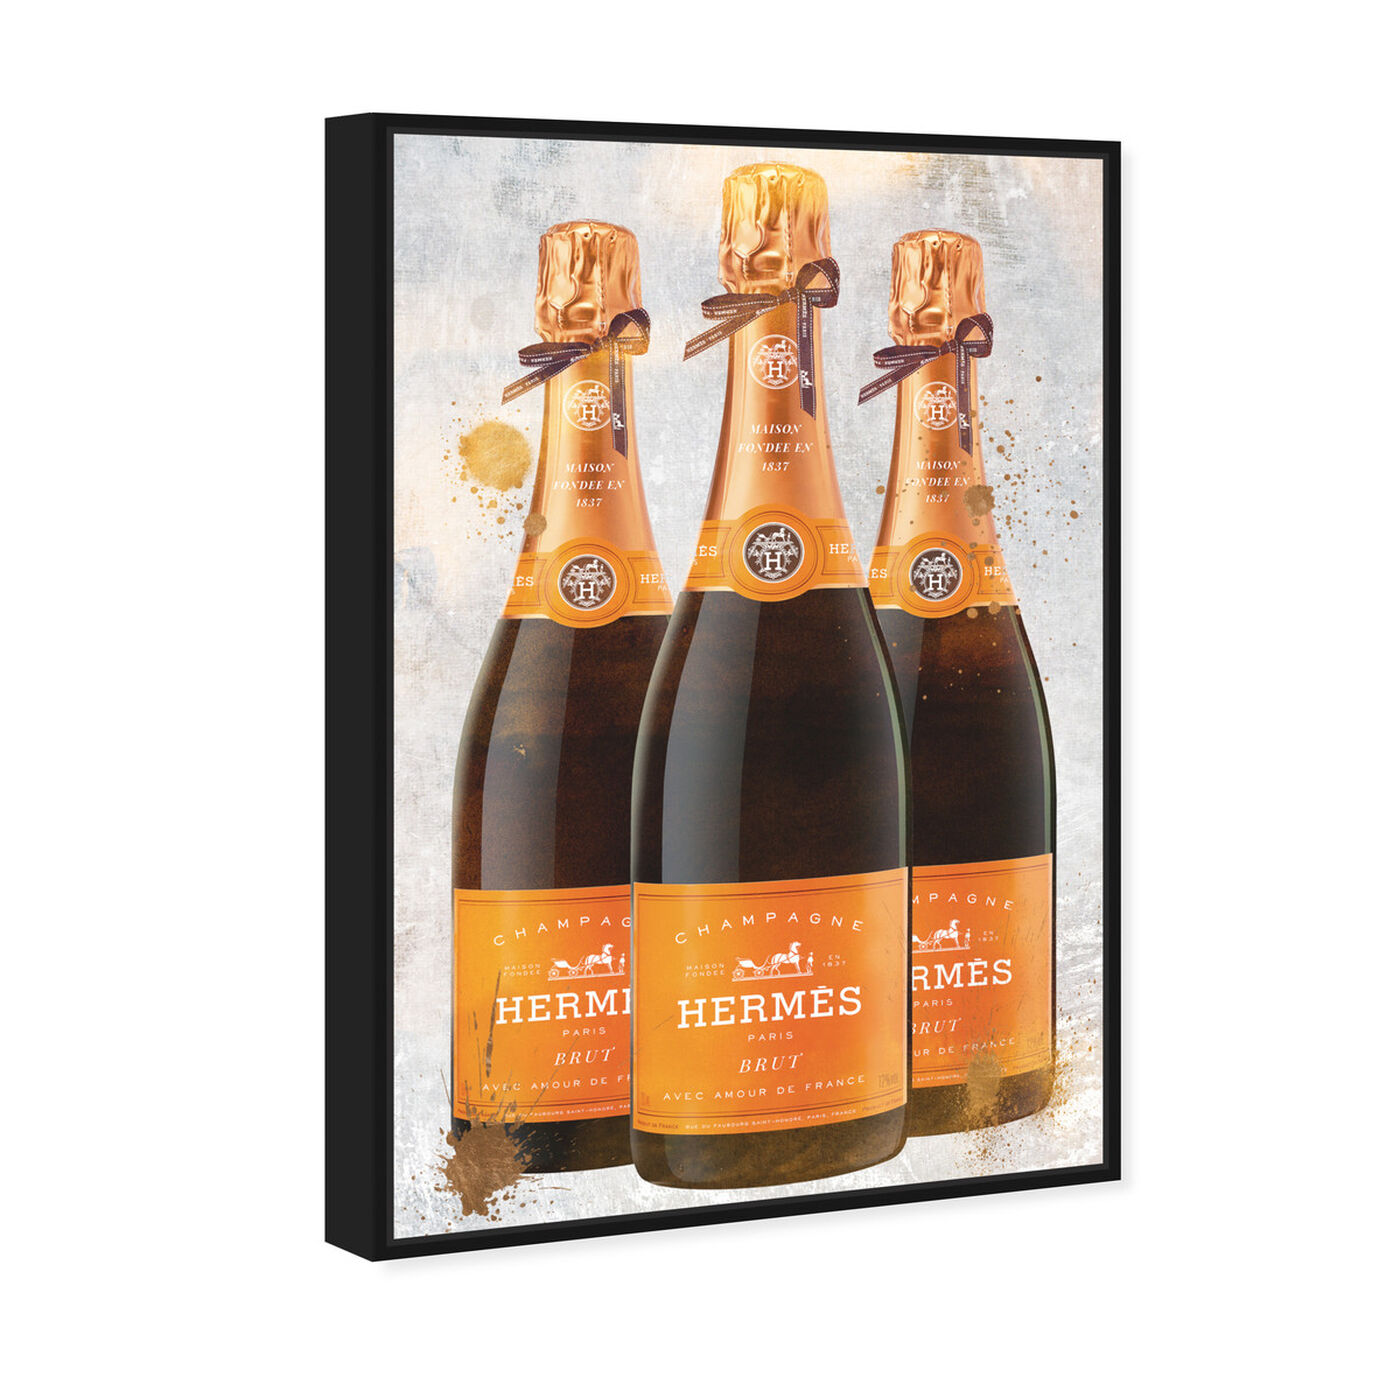 Angled view of Bags and Bubbles Champagne featuring fashion and glam and lifestyle art.